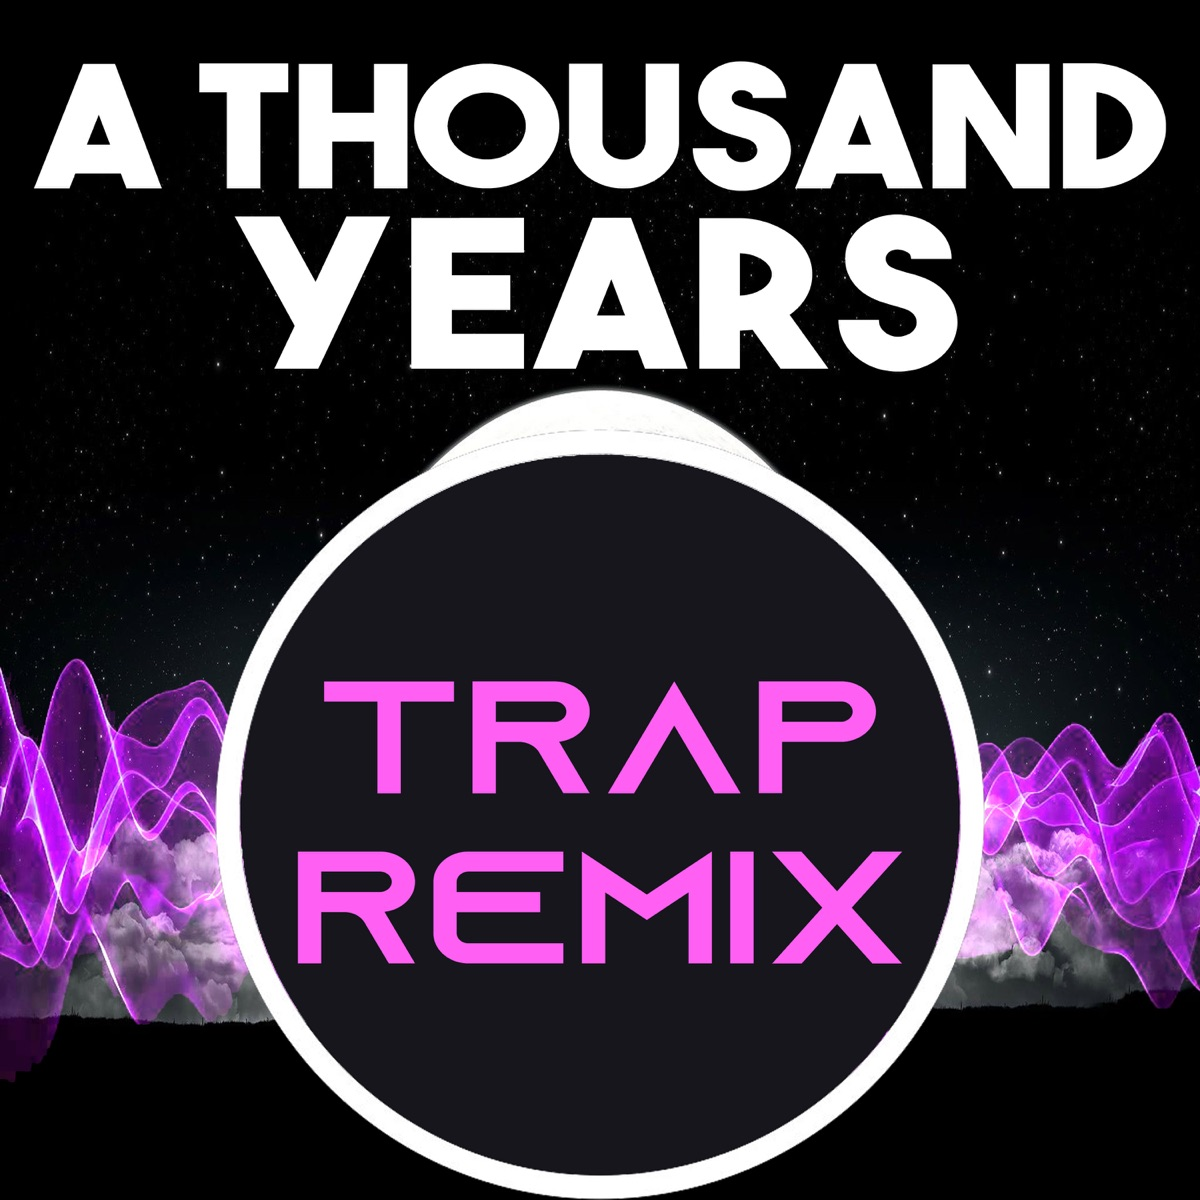 A Thousand Years Trap Remix Homage to Christina Perri - Single The Trap Remix Guys CD cover